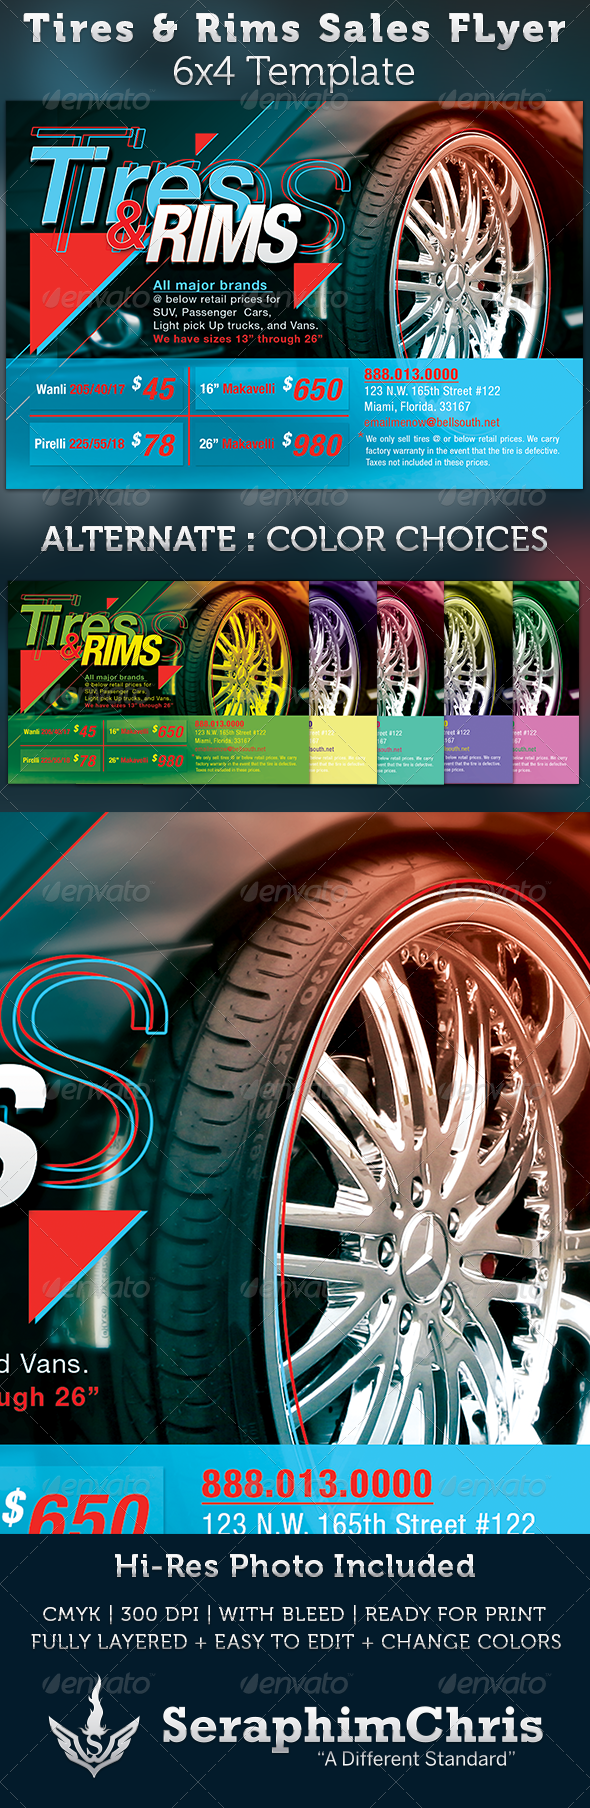 Memorial Day Car Sales >> Tires and Rims Sales Ad Flyer Template | GraphicRiver